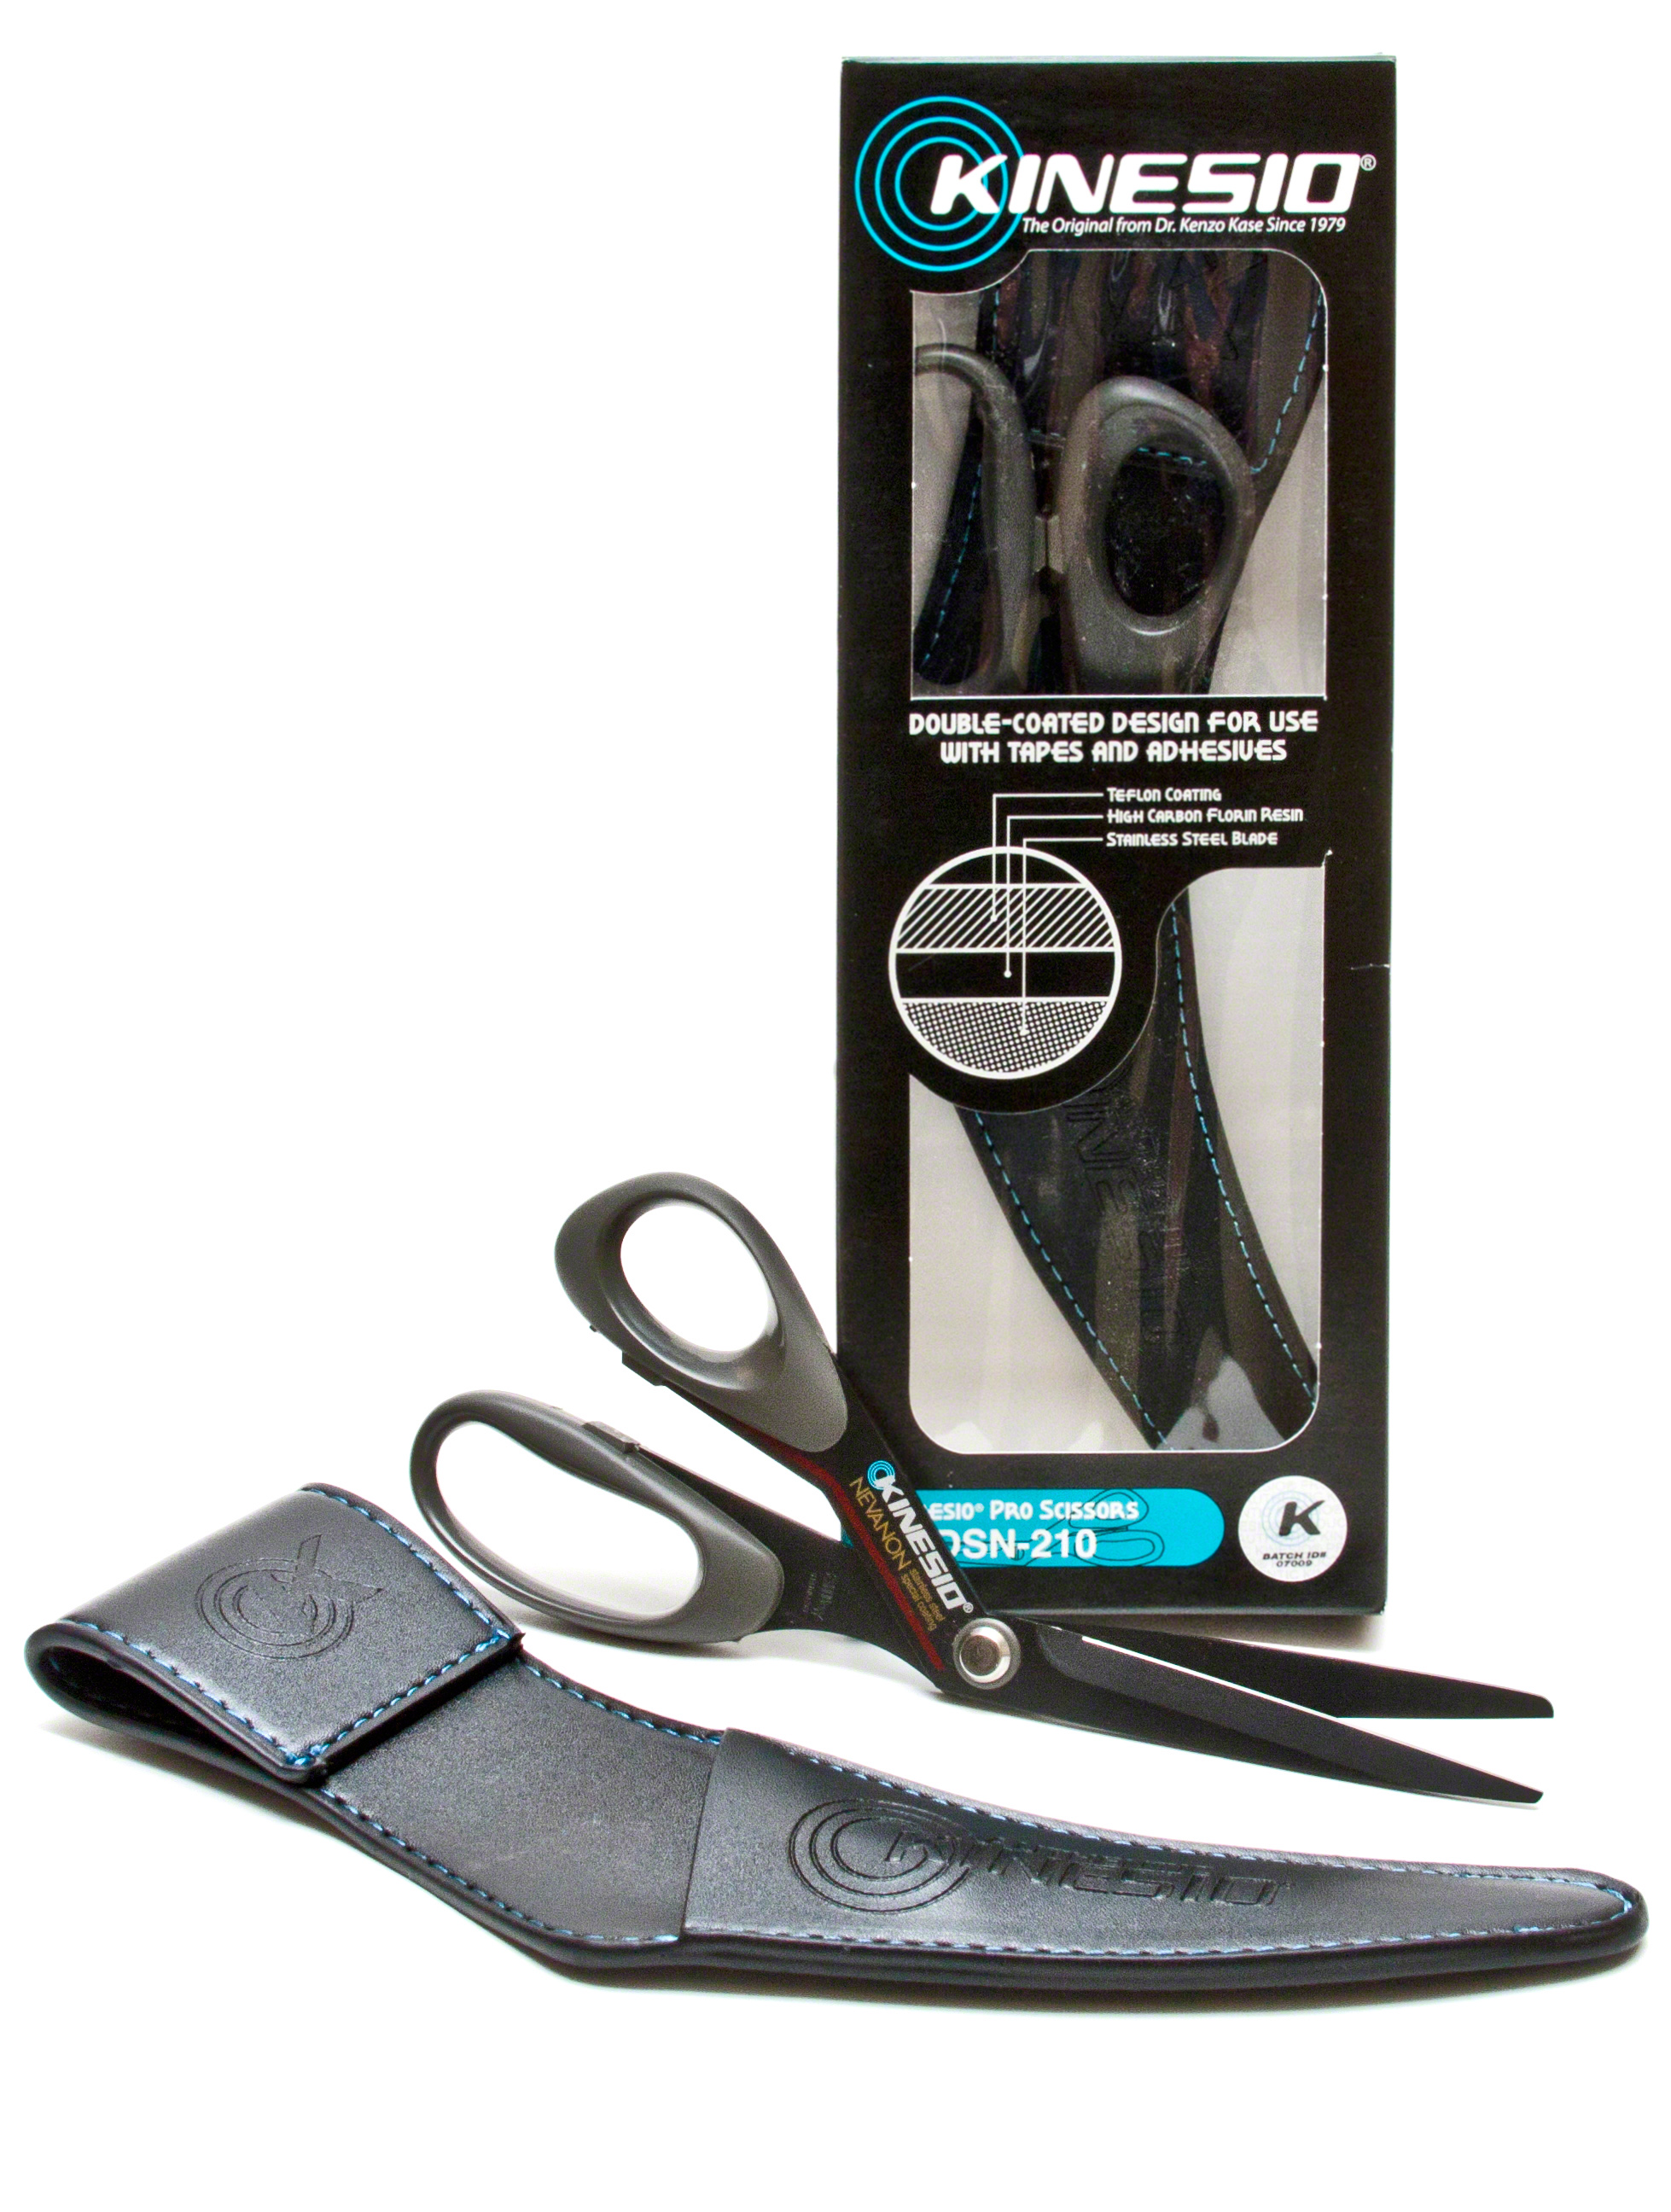 kinesio-tape-dsn210-scissors-01.jpg